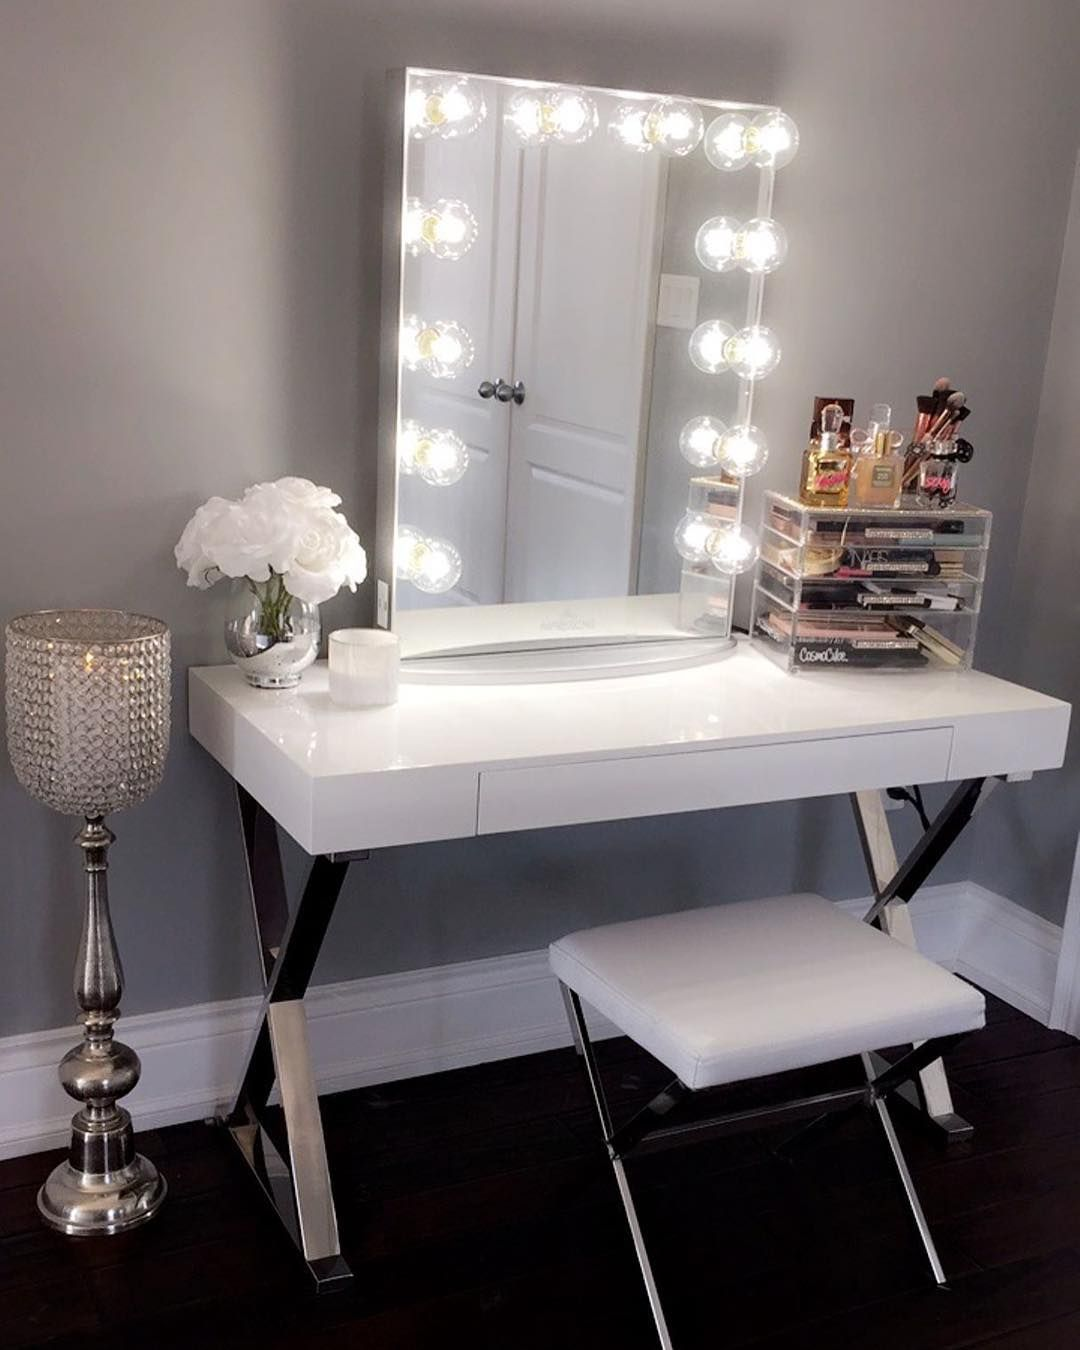 Dressing table mirrors with lights diy vanity mirror with lights for bathroom and makeup station